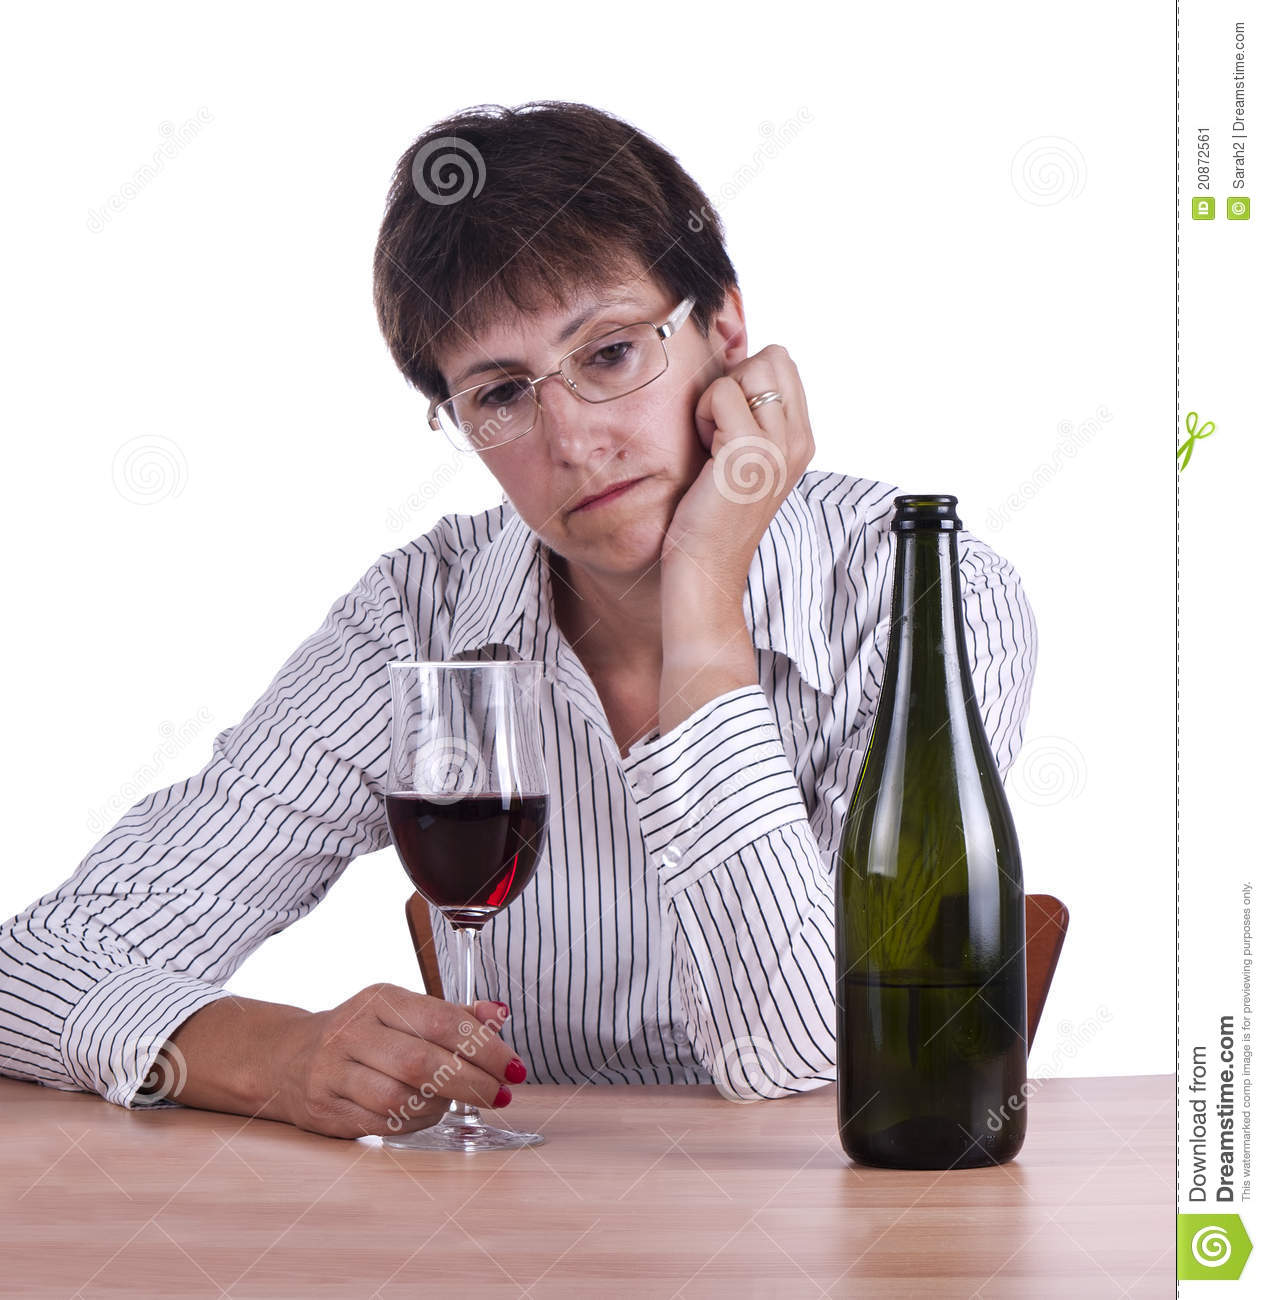 Woman in business shirt drinking red wine alone